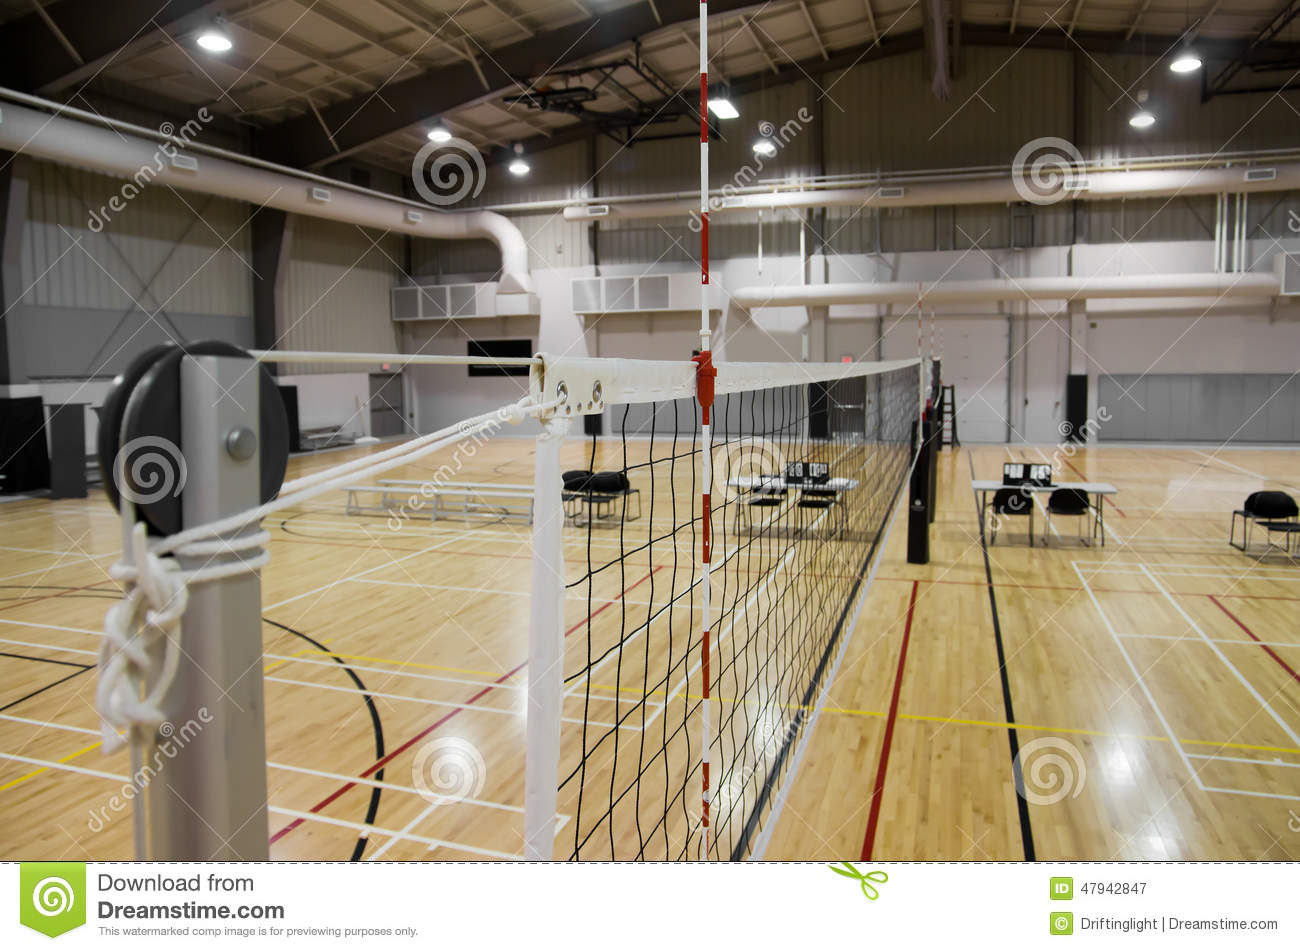 Indoor Volleyball Court Stock Photo - Image: 47942847